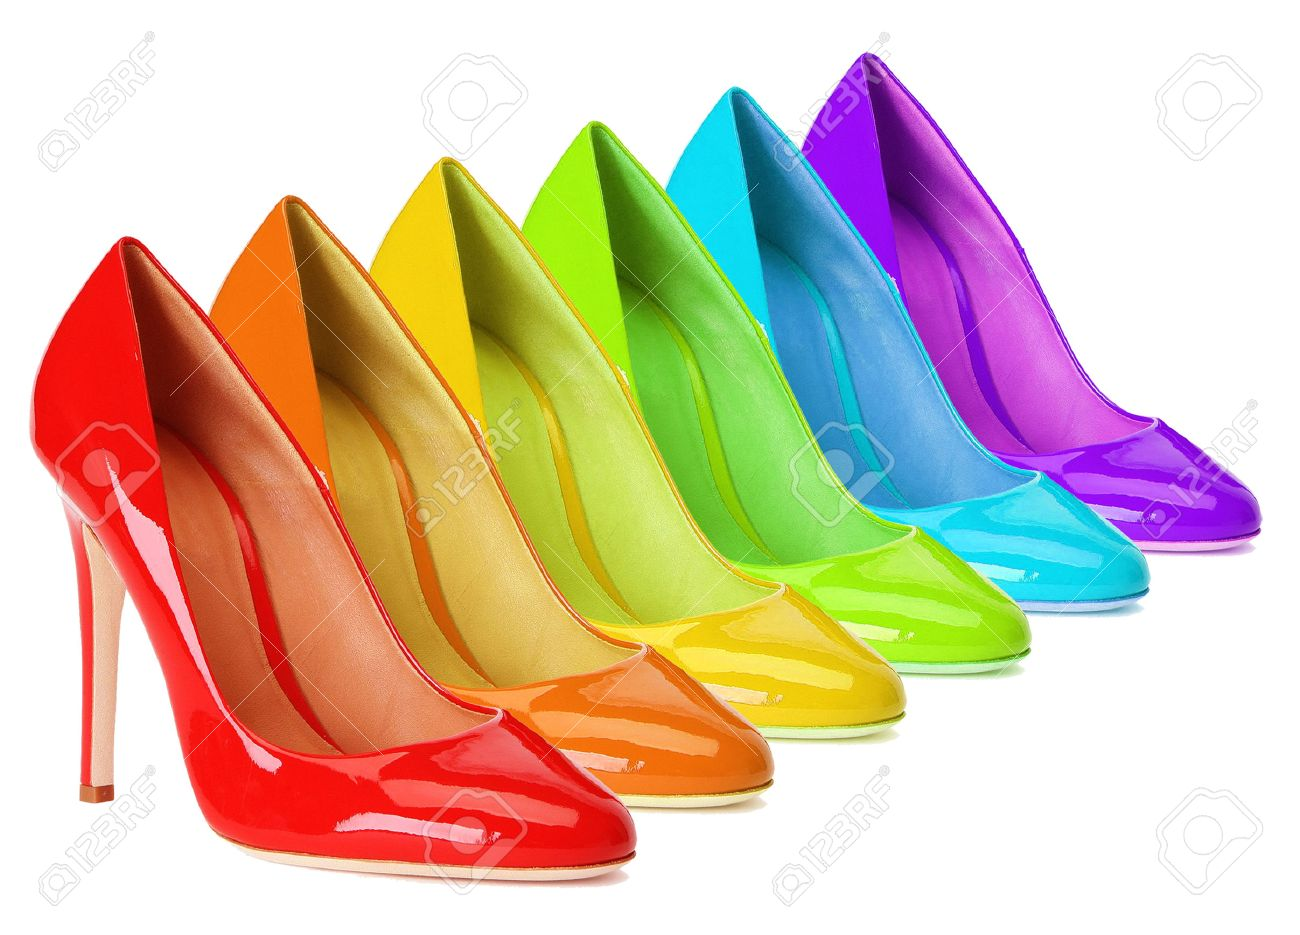 5b5cbcff0ee3 High Heel Shoes In Rainbow Colors. Stock Photo, Picture And Royalty ...